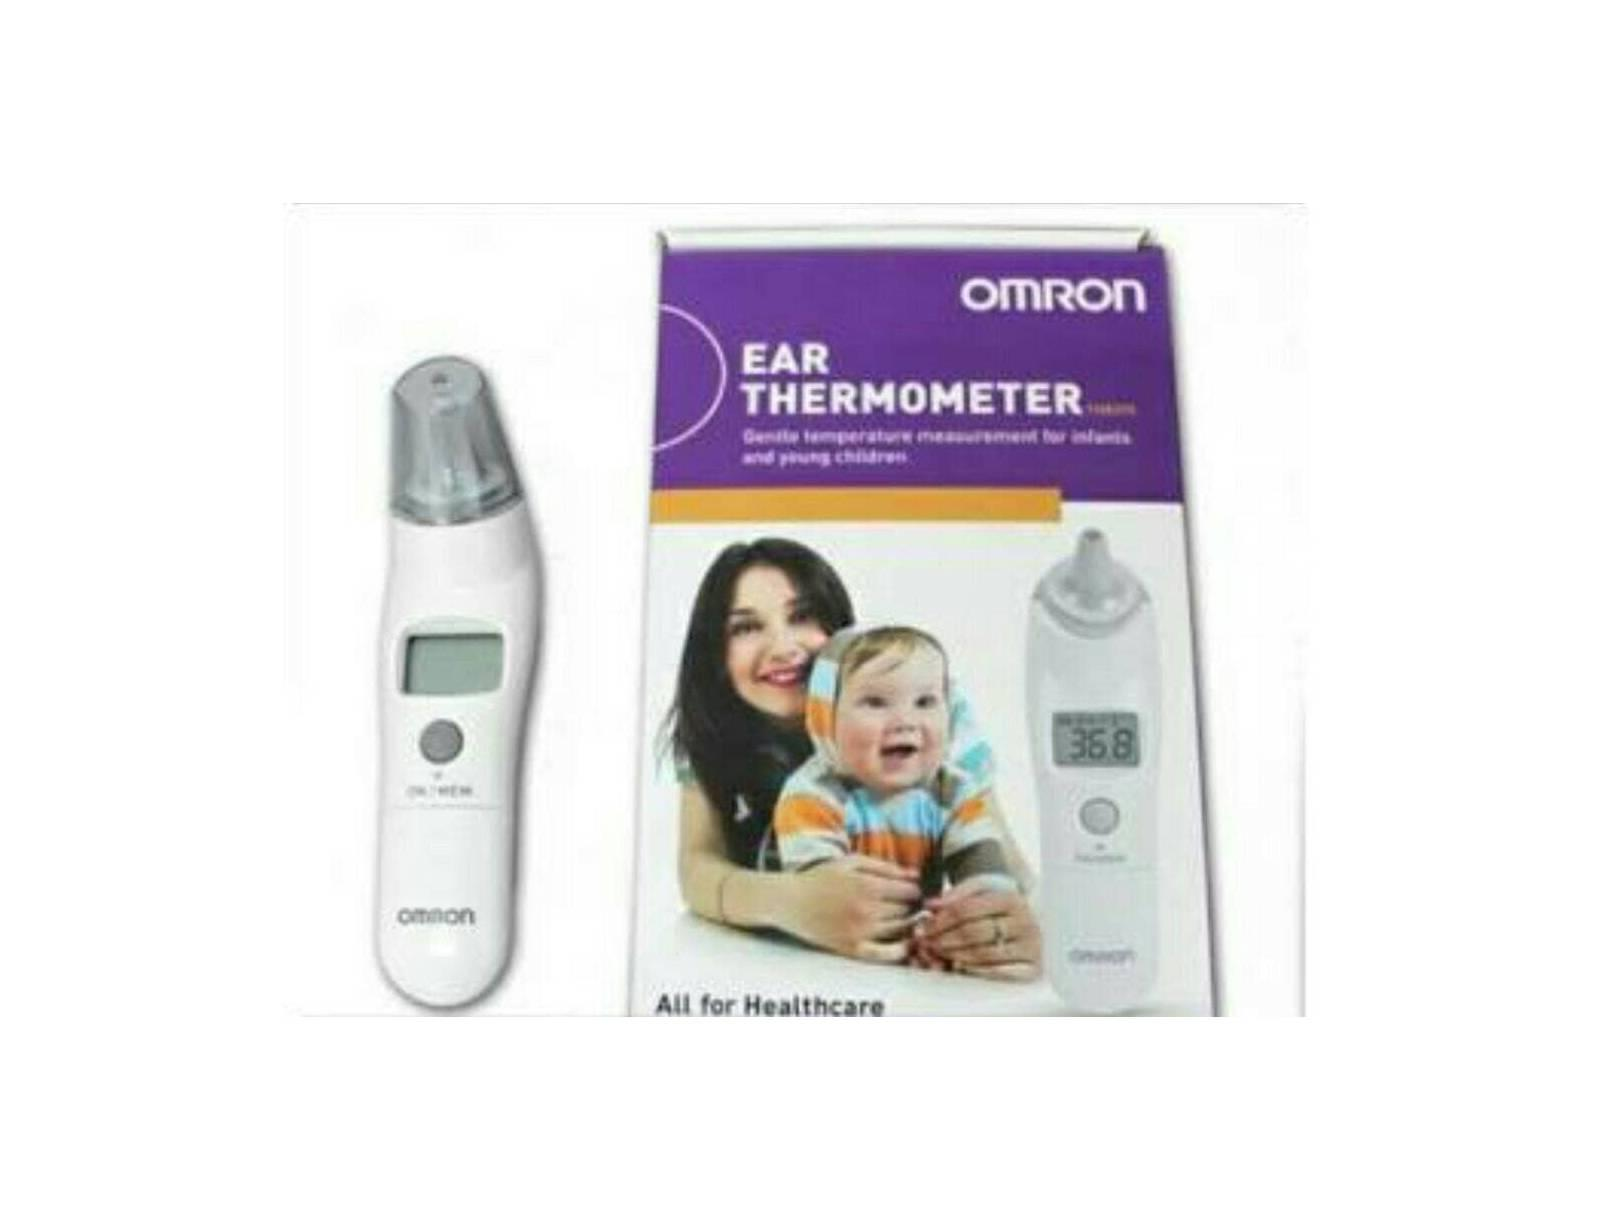 OMRON Thermometer Telinga TH839S ( Ear Thermometer )